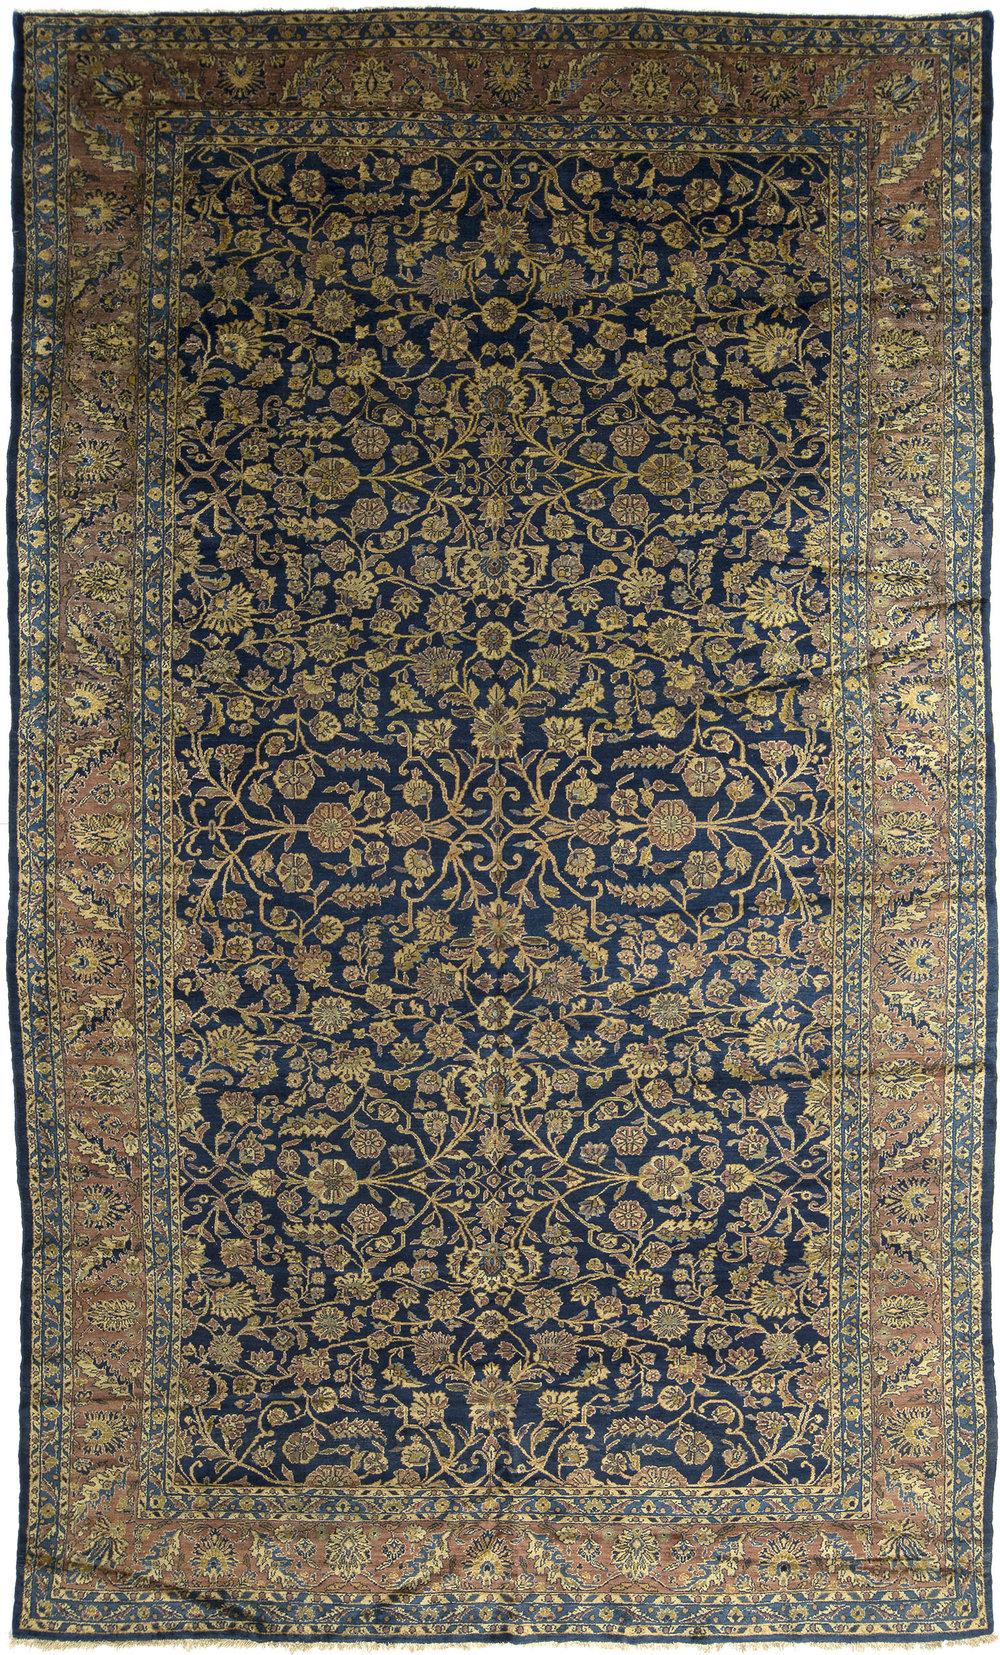 "Northwest Persian Carpet 15' 3"" x 8' 9"""